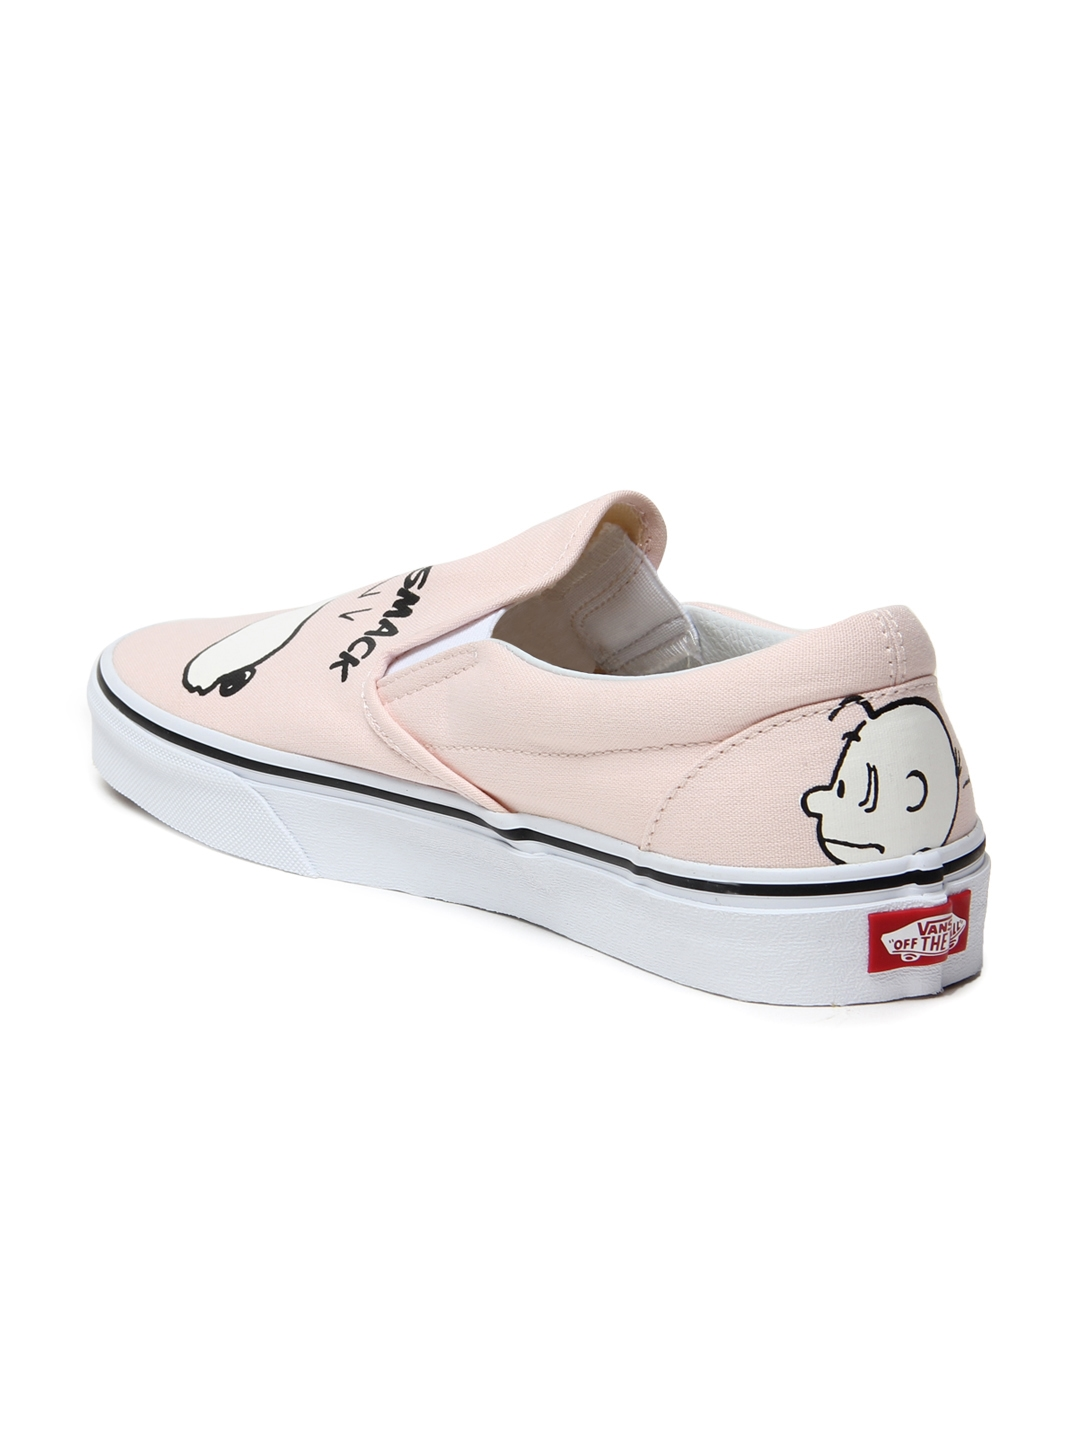 Buy Vans Unisex Pink Classic Printed Slip On Sneakers - Casual Shoes ... 3f435f6f6